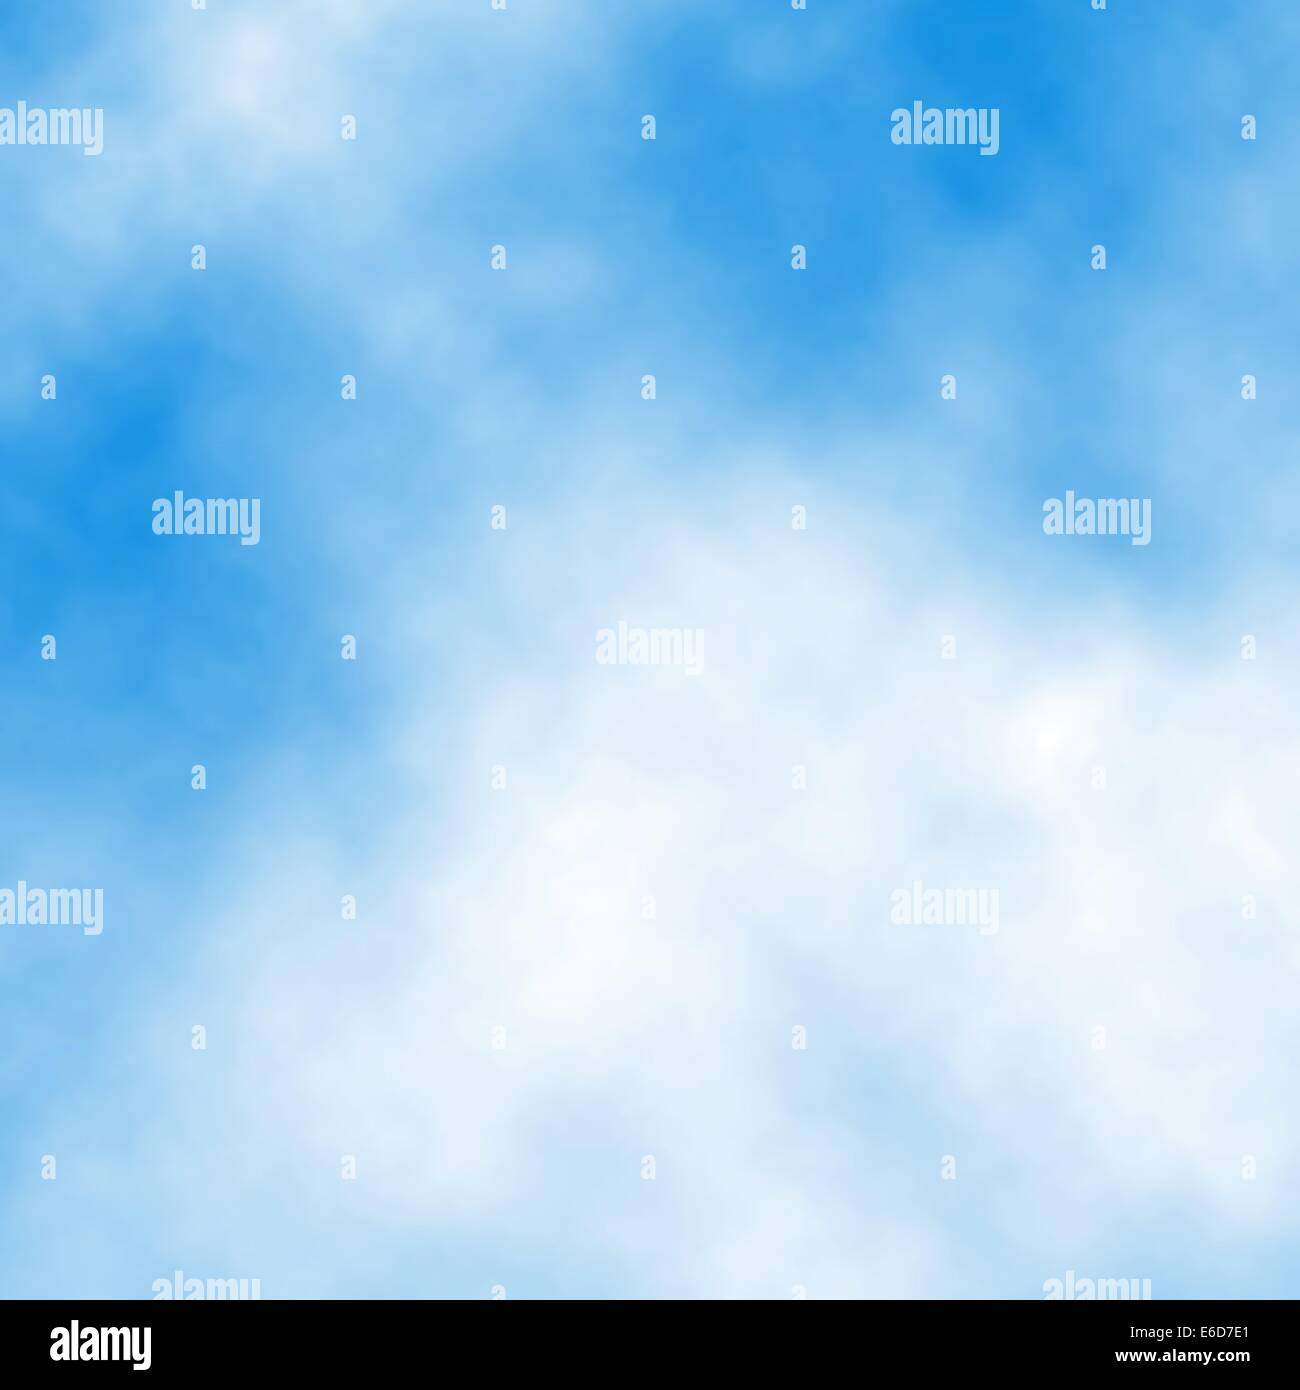 Editable vector illustration of white cloud detail in a blue sky made using a gradient mesh - Stock Vector